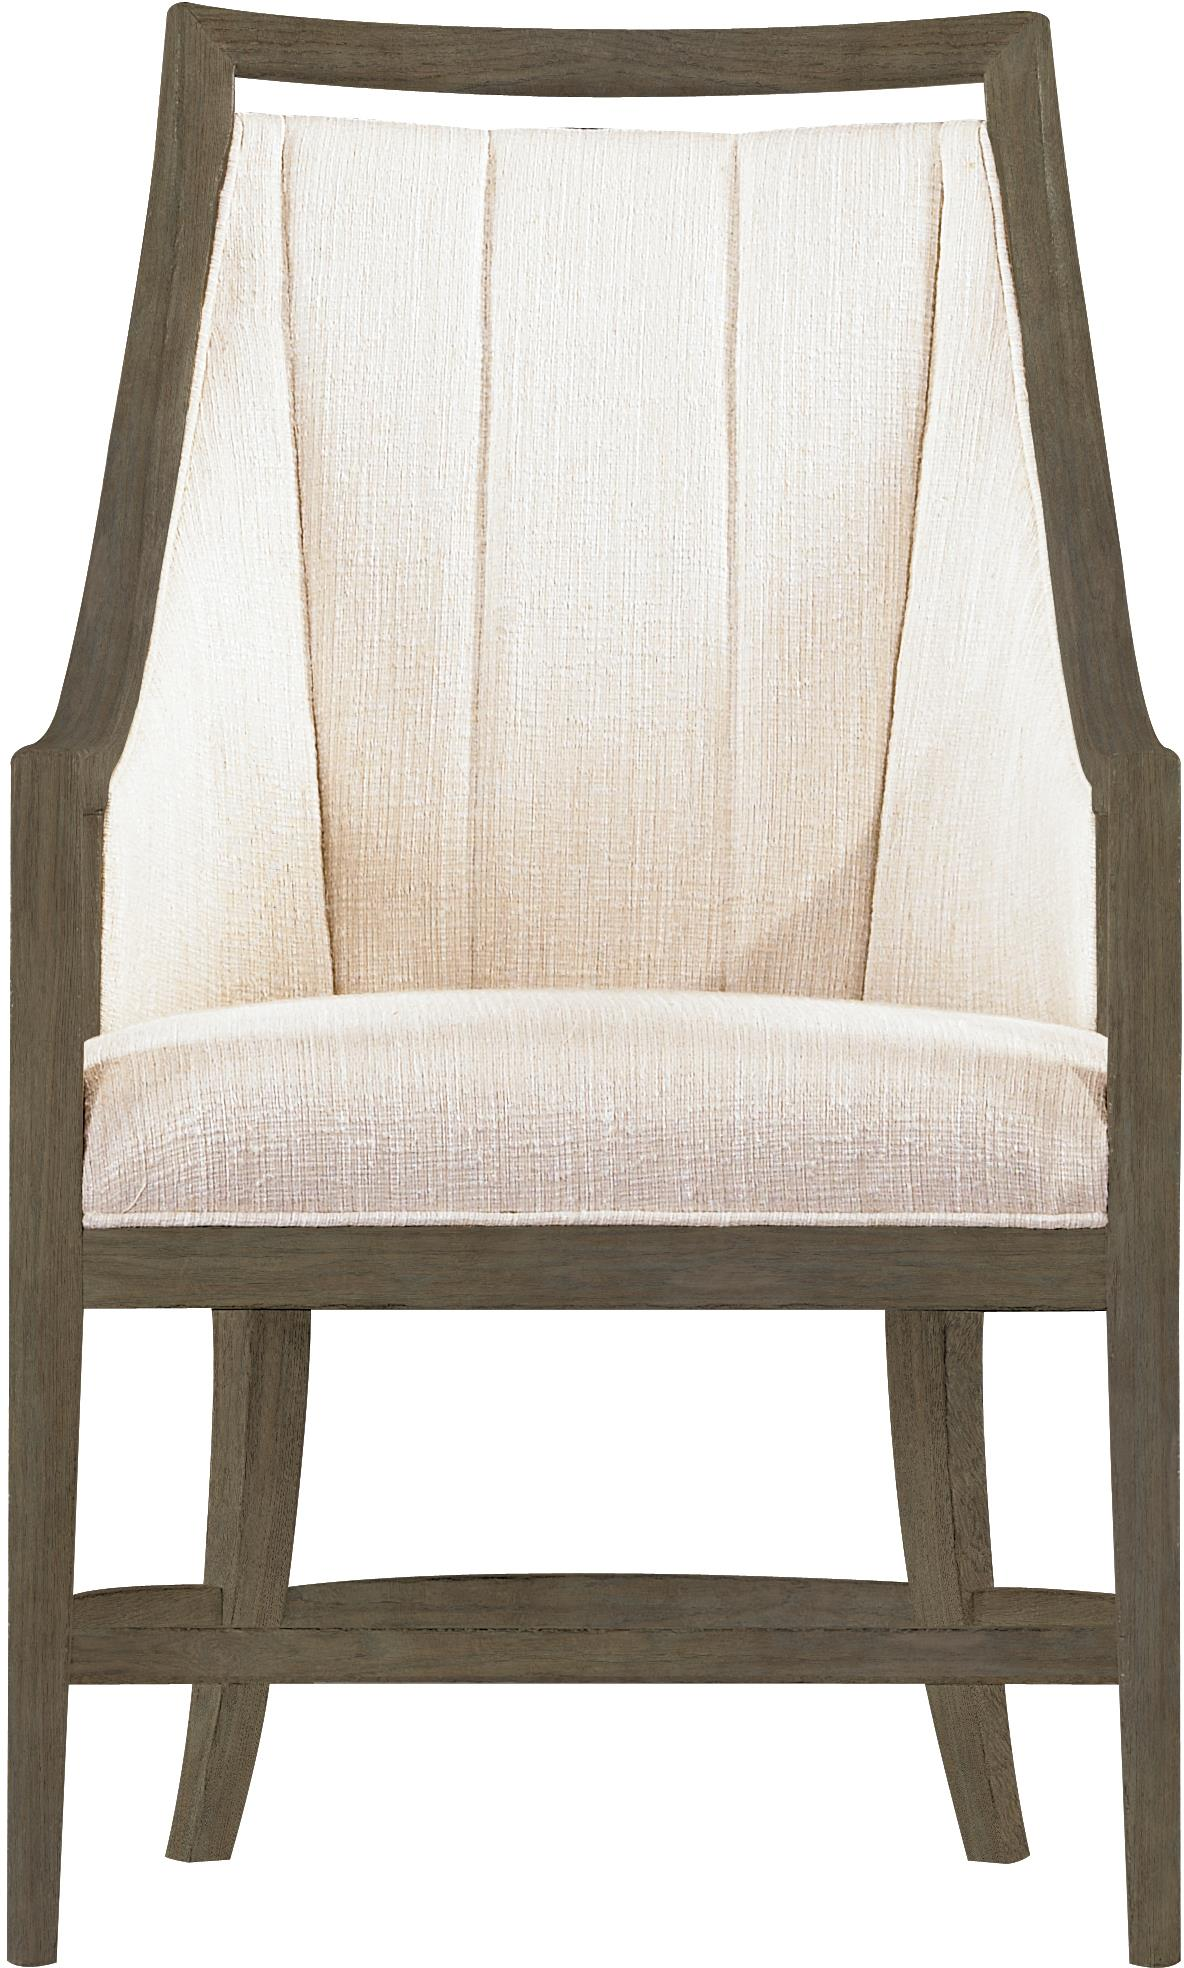 Stanley Furniture Coastal Living Resort By the Bay Host Chair - Item Number: 062-31-75